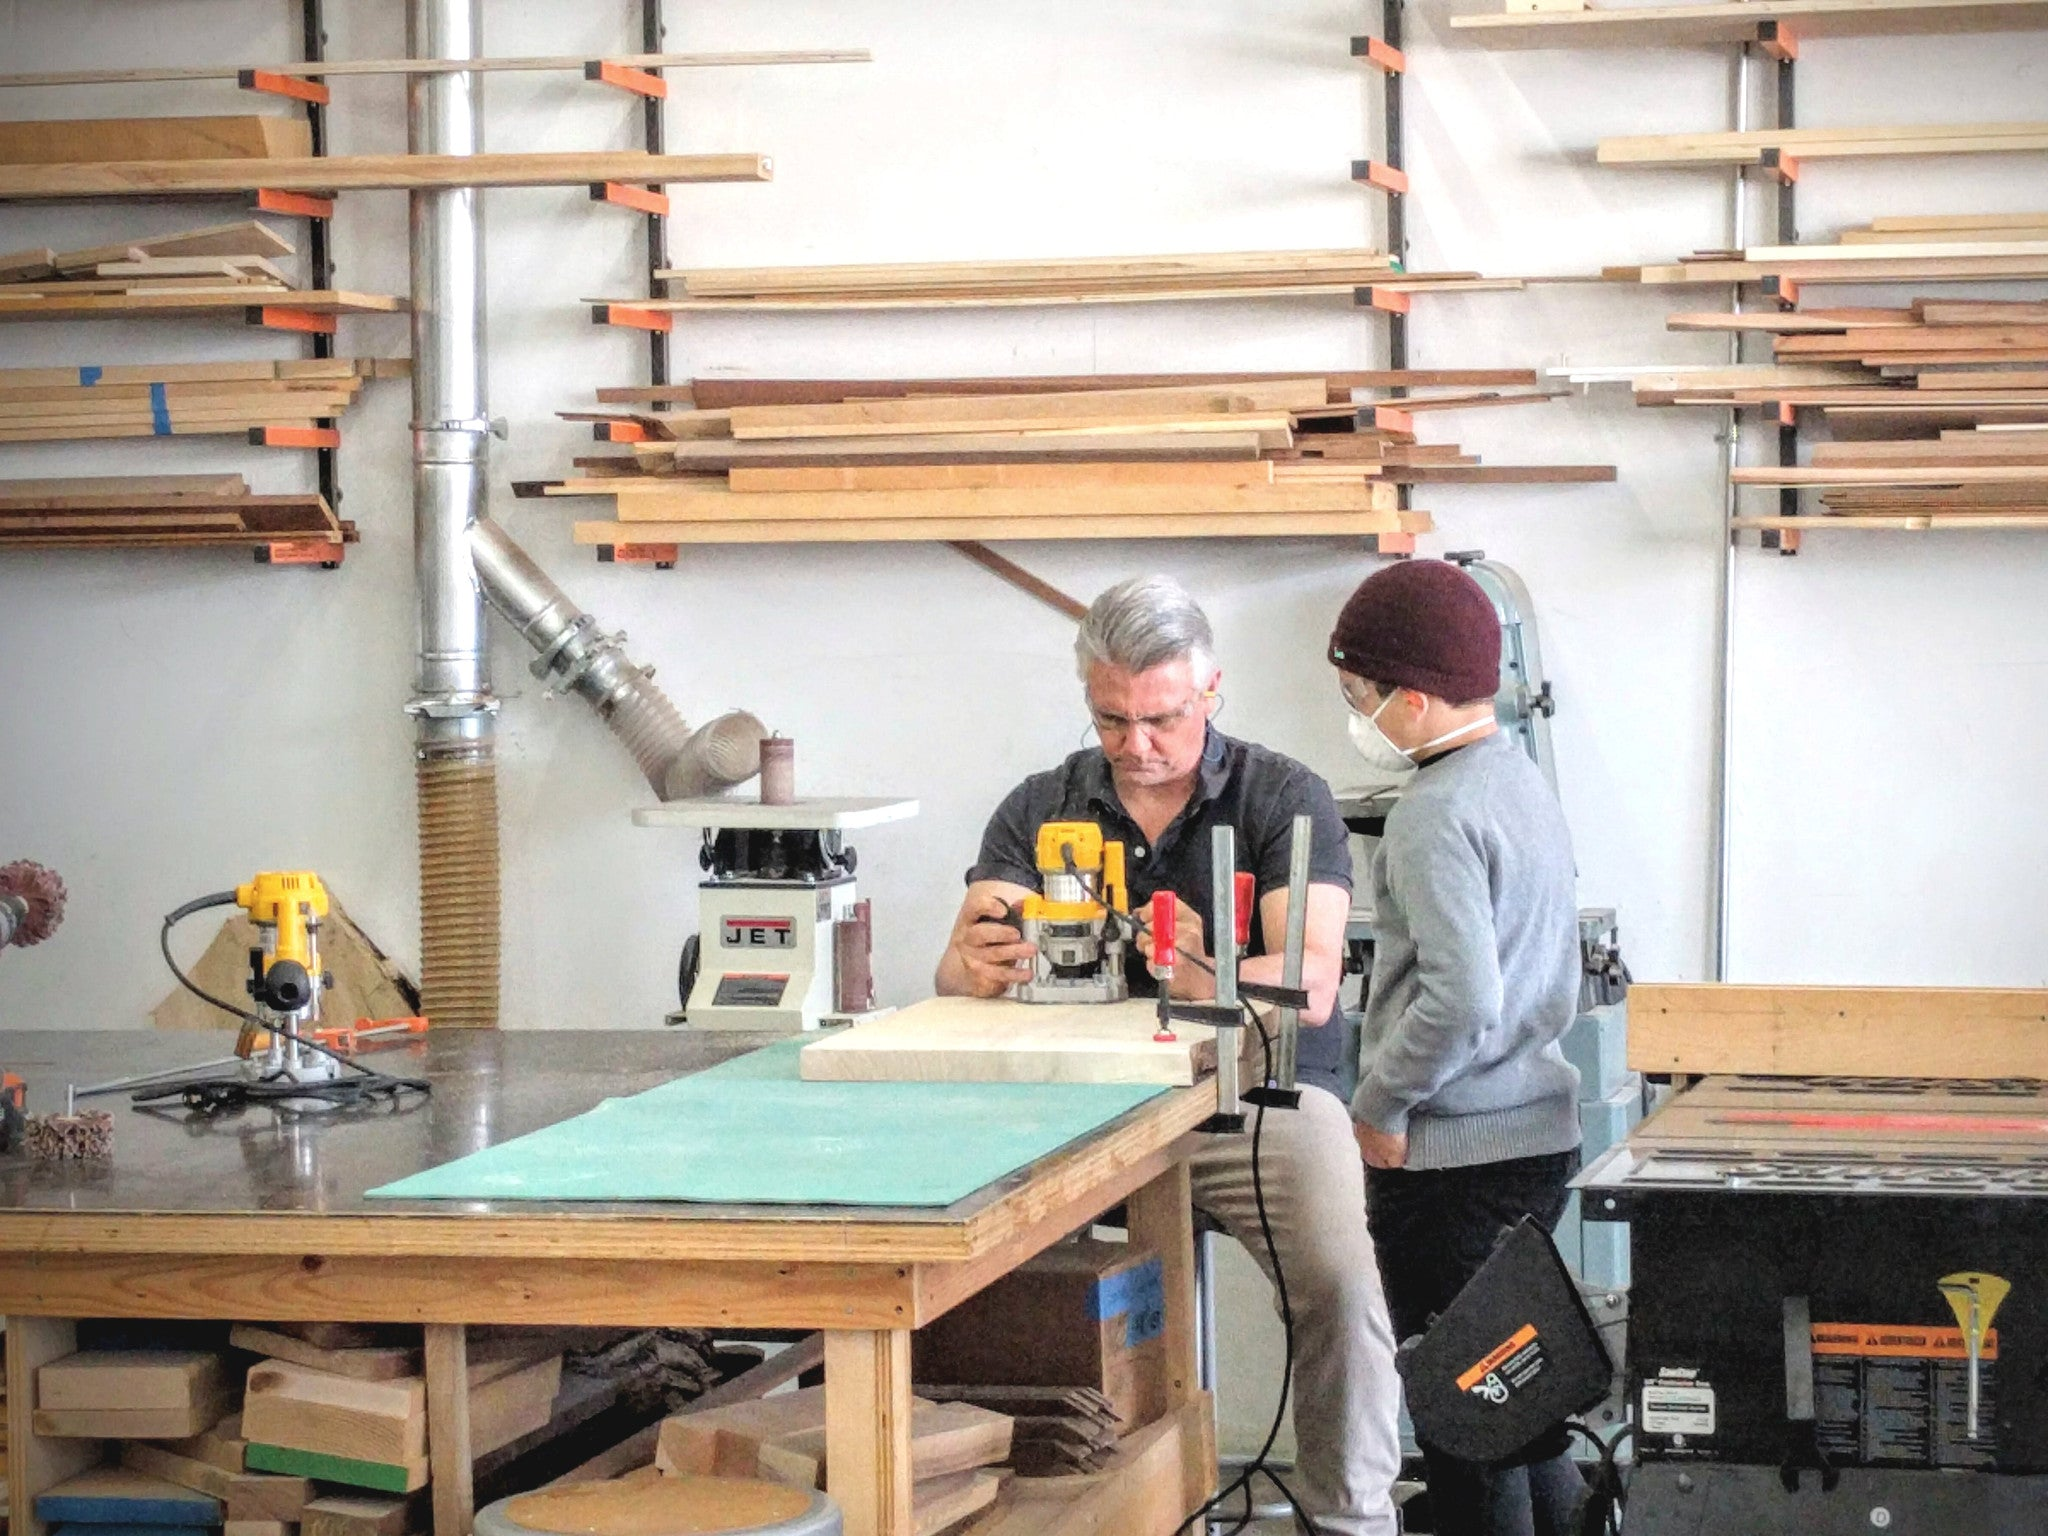 Intro to Routers Workshop and Class at Allied Woodshop, Los Angeles California